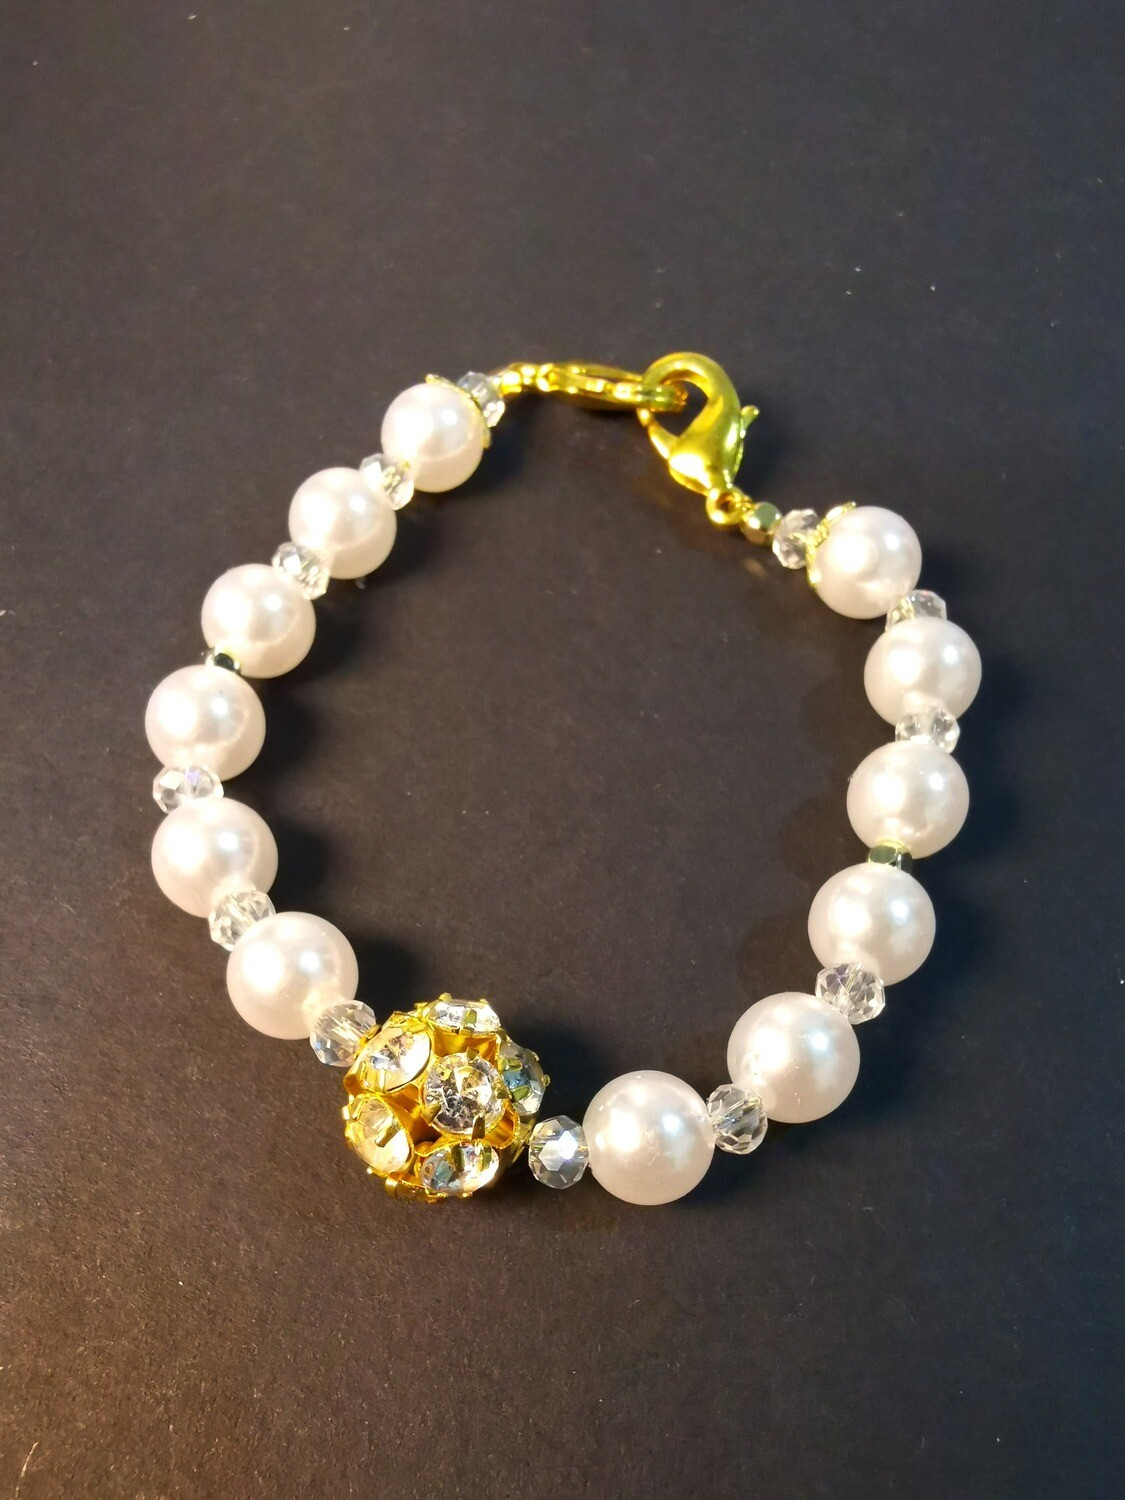 Bracelet & Face Mask Extender Dual Function (Delaney - Gold Diamond Ball, Pearl Beads & Durable Soft Wire String)